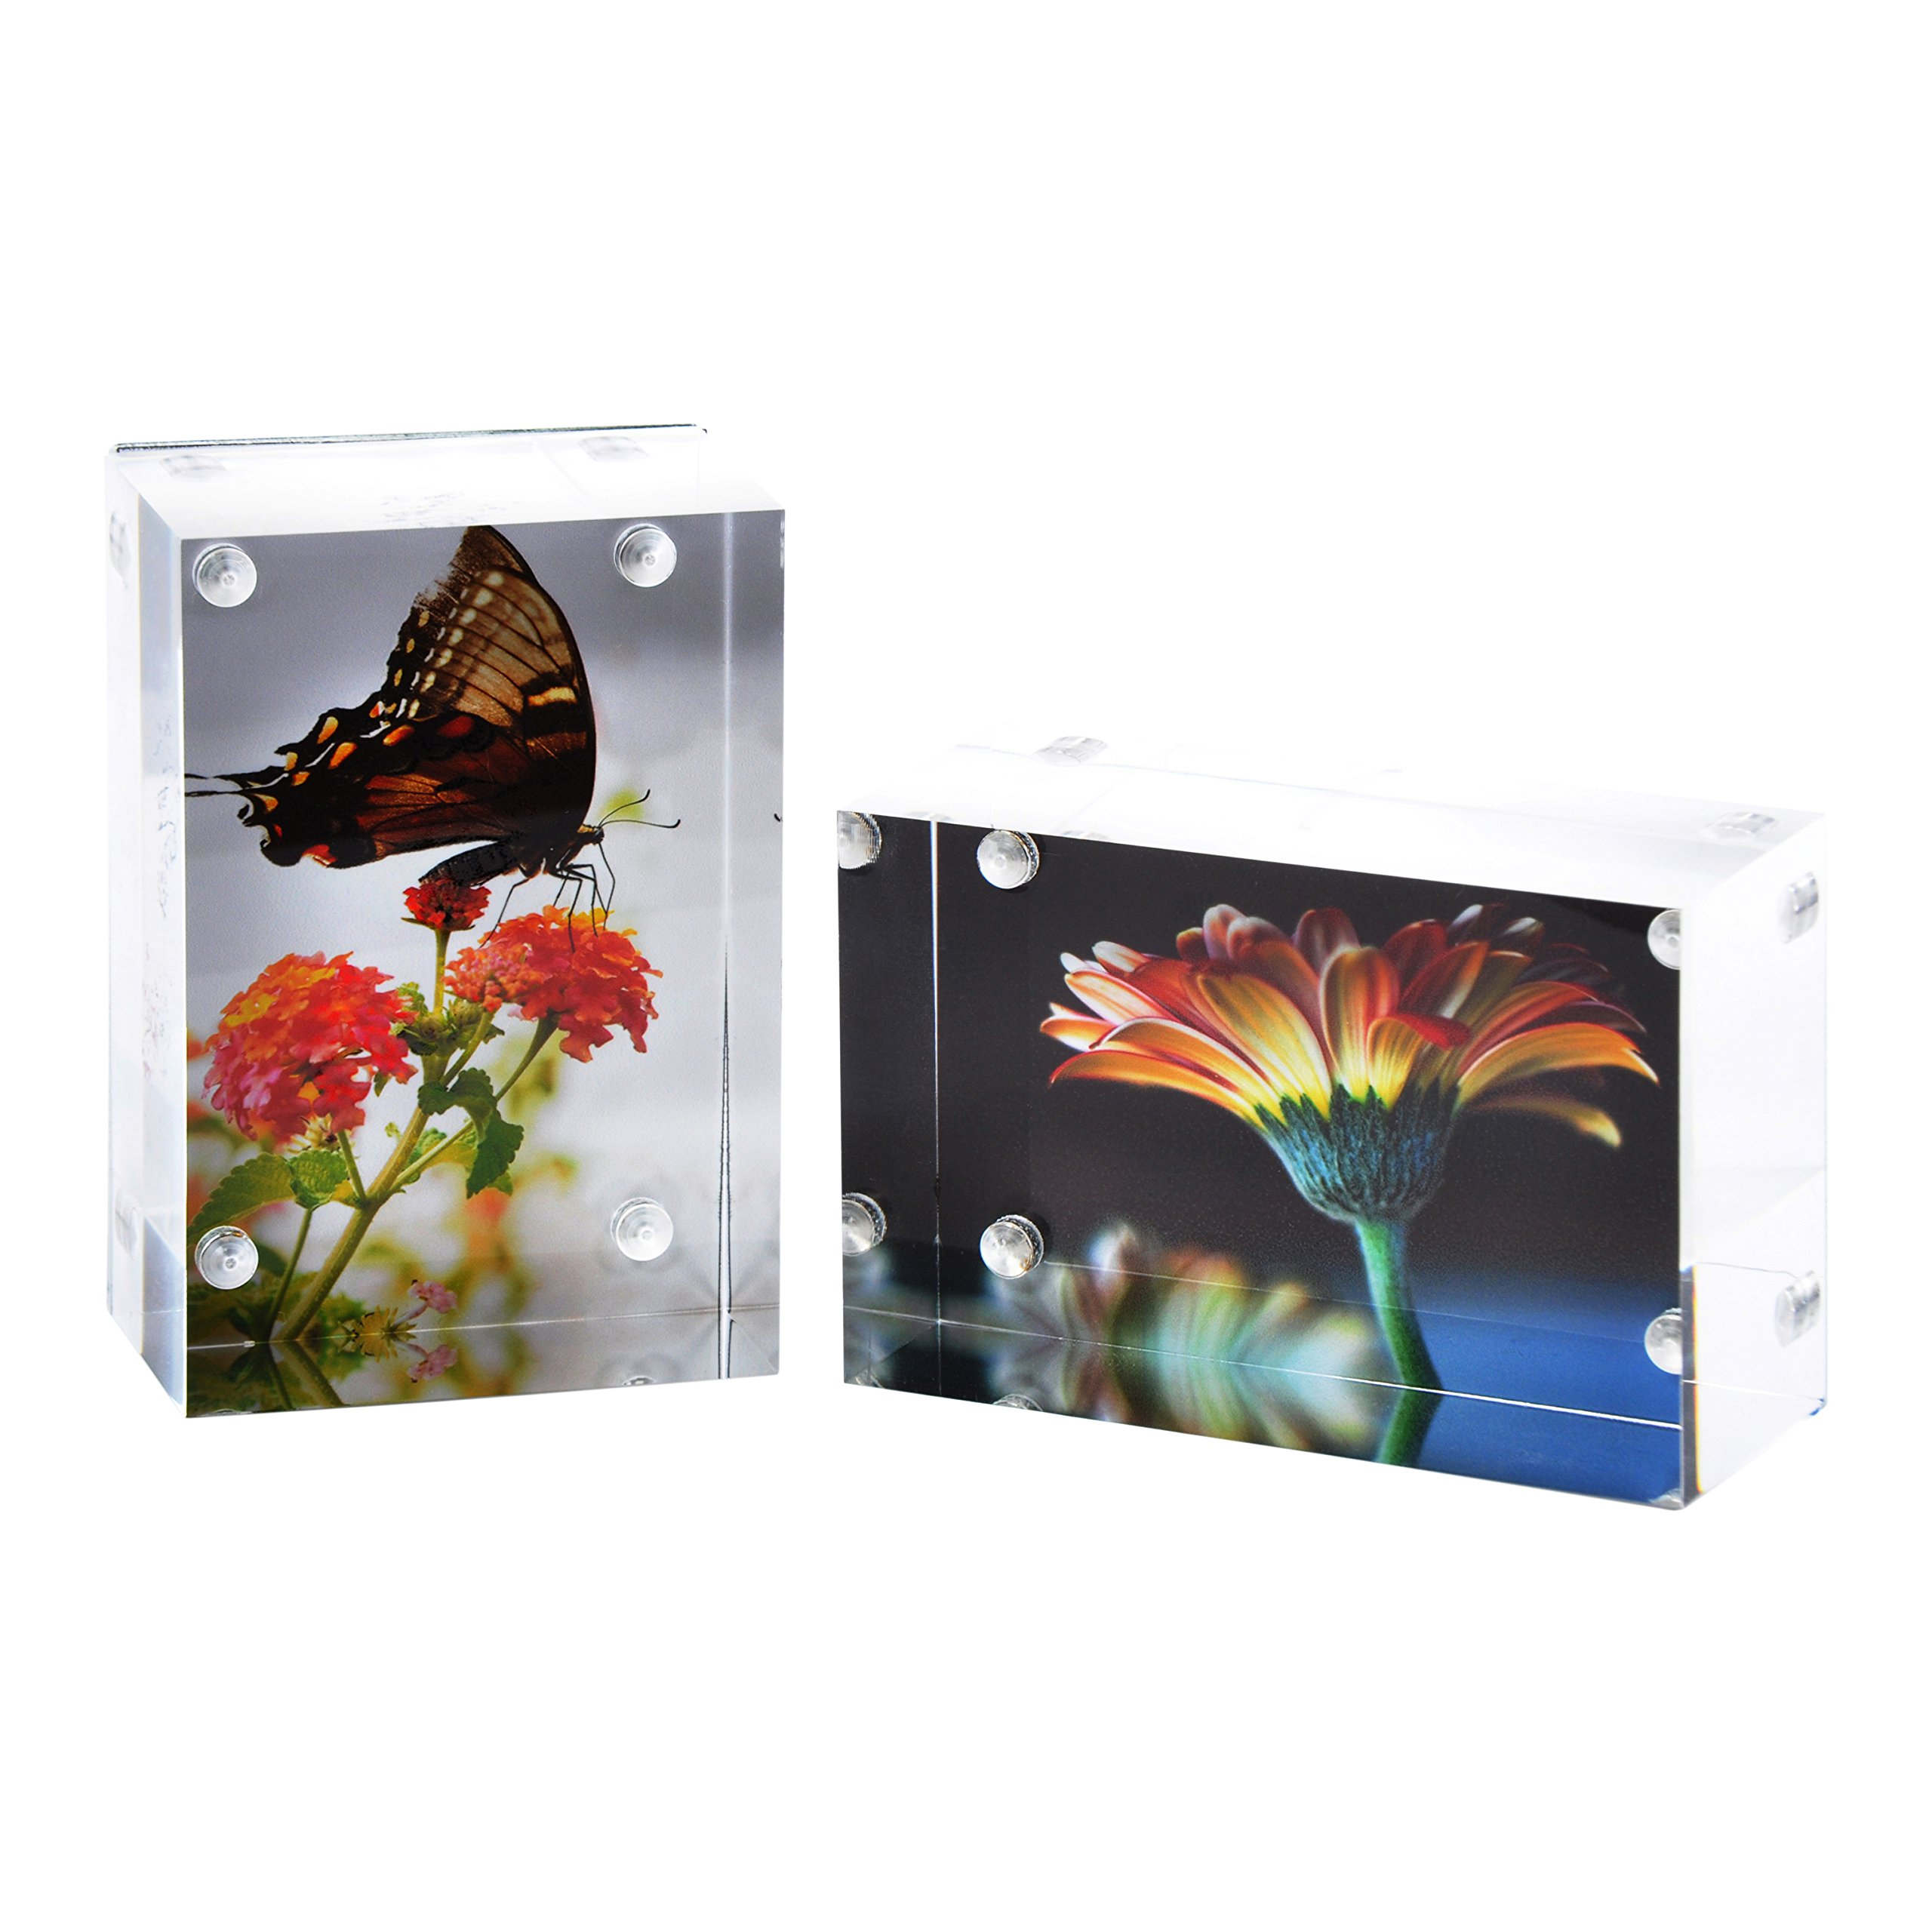 2-Pk Wallet Photo Sized Magnetic Photo Frame: Elegantly Display Wallet-Sized Photos in Home/Office - Magnetic Picture Frames for 2x3 Photos with Clear Acrylic and Metal Backing - 3cm Thick by Nicom